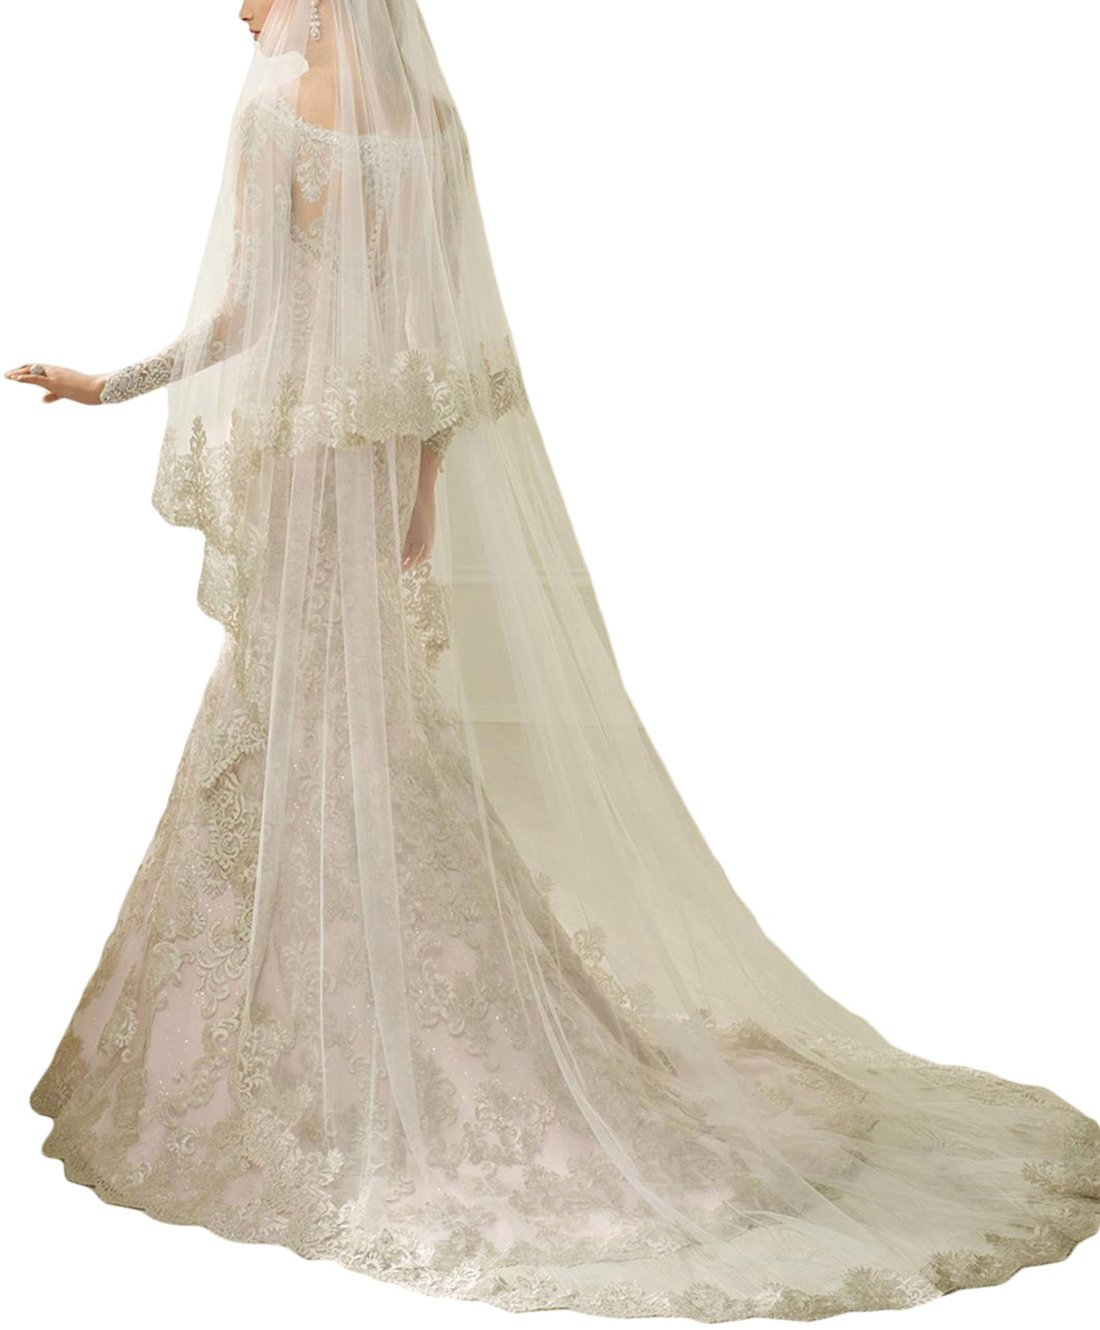 Newdeve Lace Wedding Veils Cathedral Length 2 Tiers Bridal Veil Long (Ivory) by New Deve